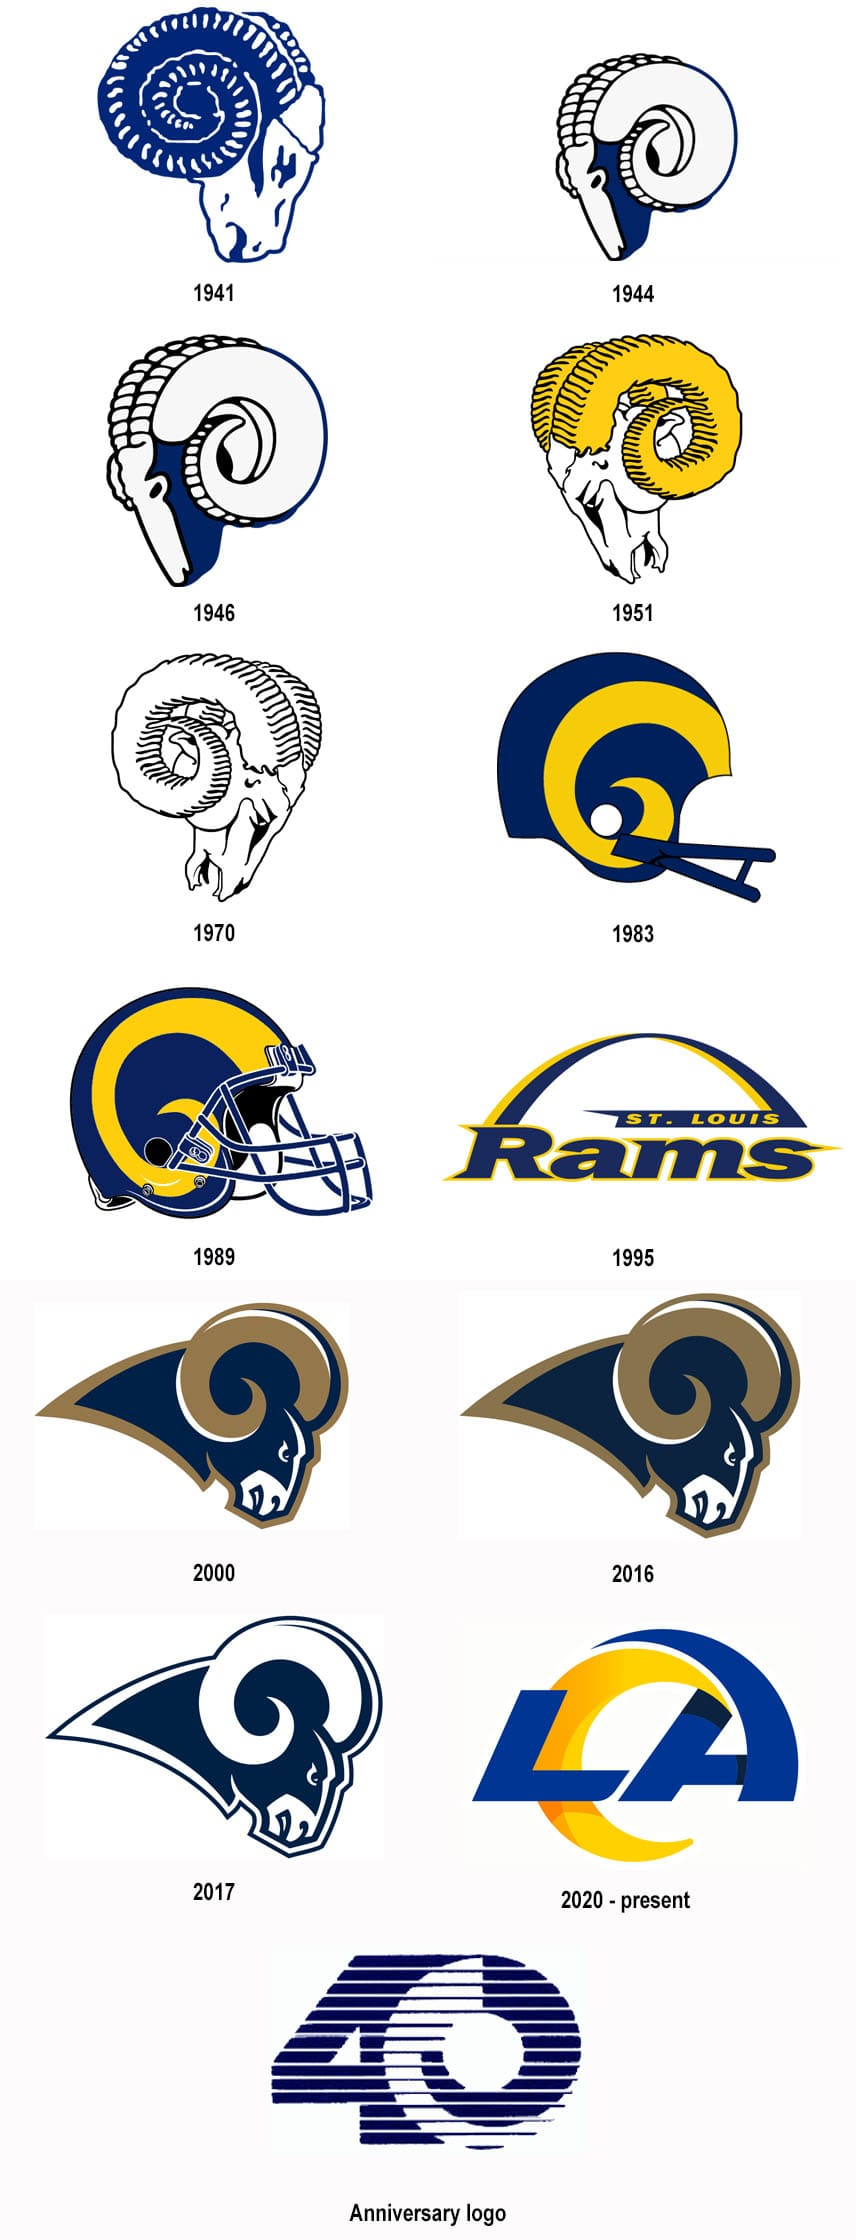 los angeles rams logo and history symbol helmets uniform nfl teams logo ang history nfl teams logo ang history